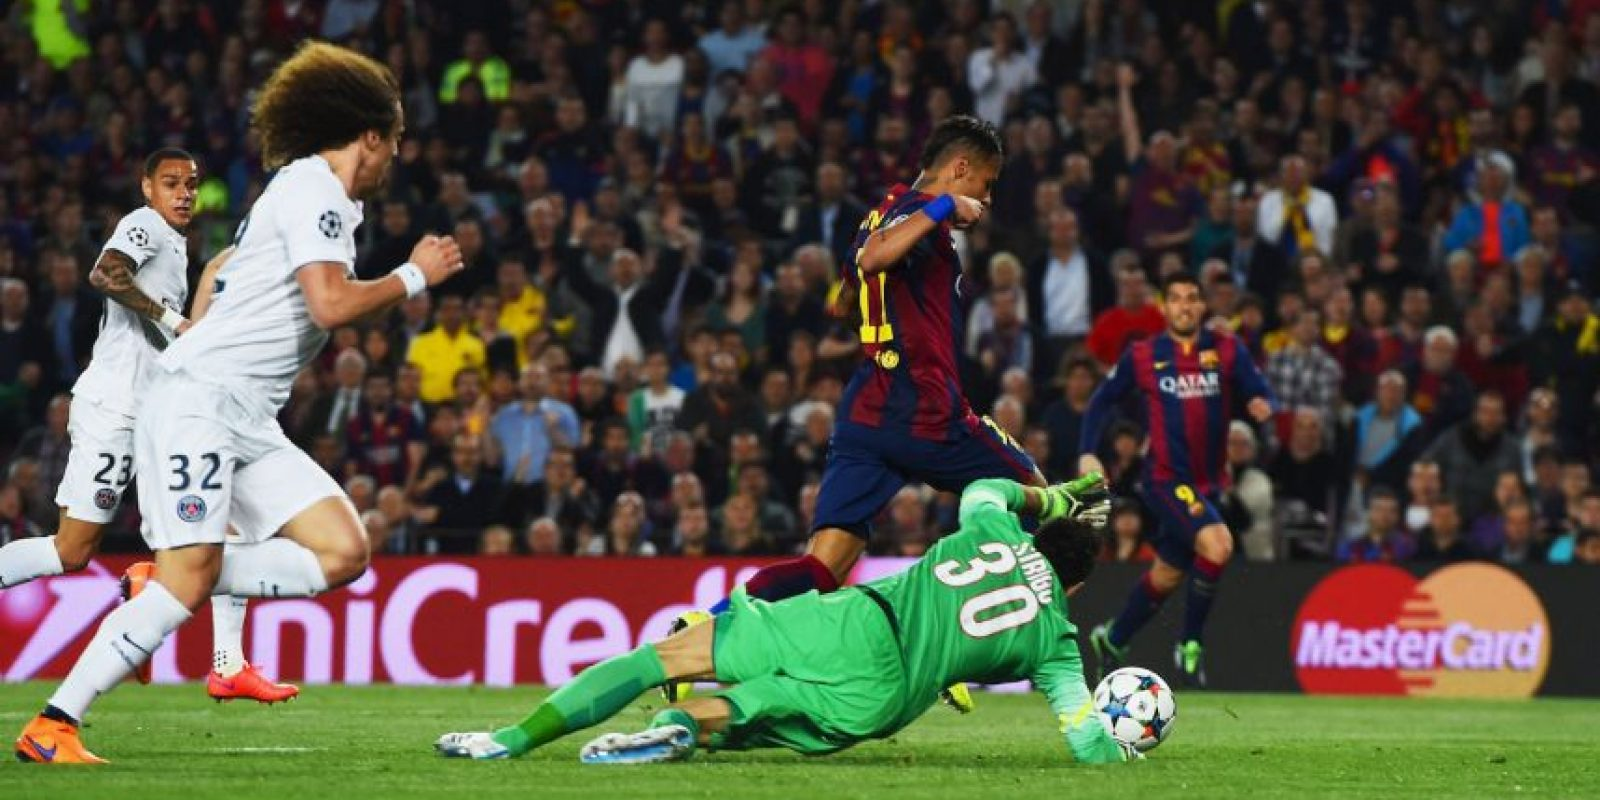 4. Gol de Neymar (Barcelona) al PSG. Foto: Getty Images